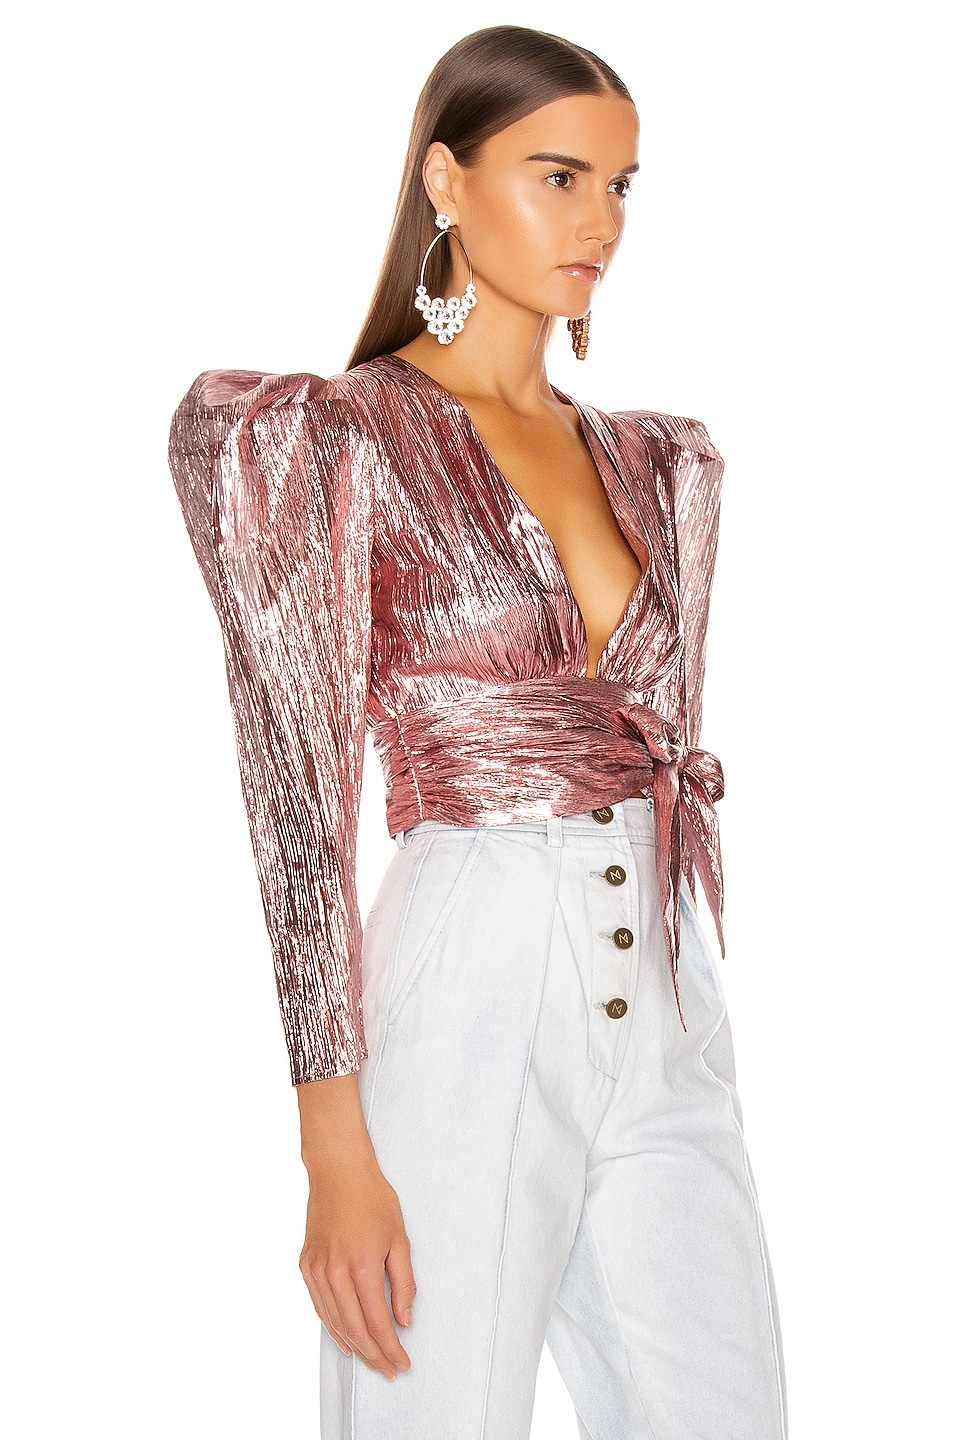 Image 2 of Atoir Close Call Crop Top in Orchid Pink